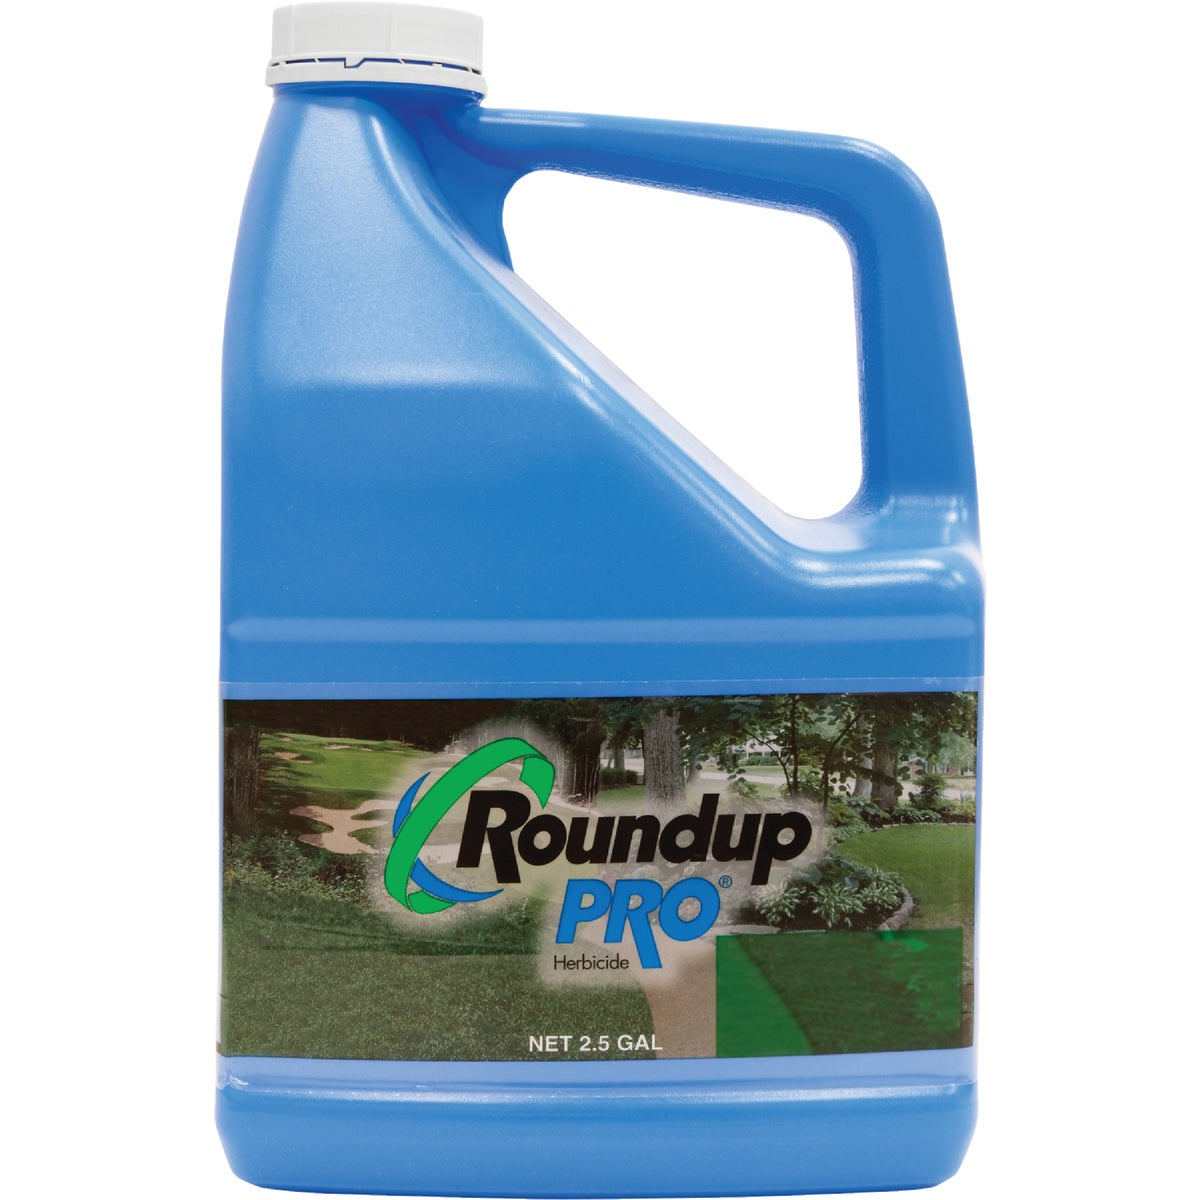 2.5GAL 41% CONC ROUNDUP - 8889110 by Scotts Company